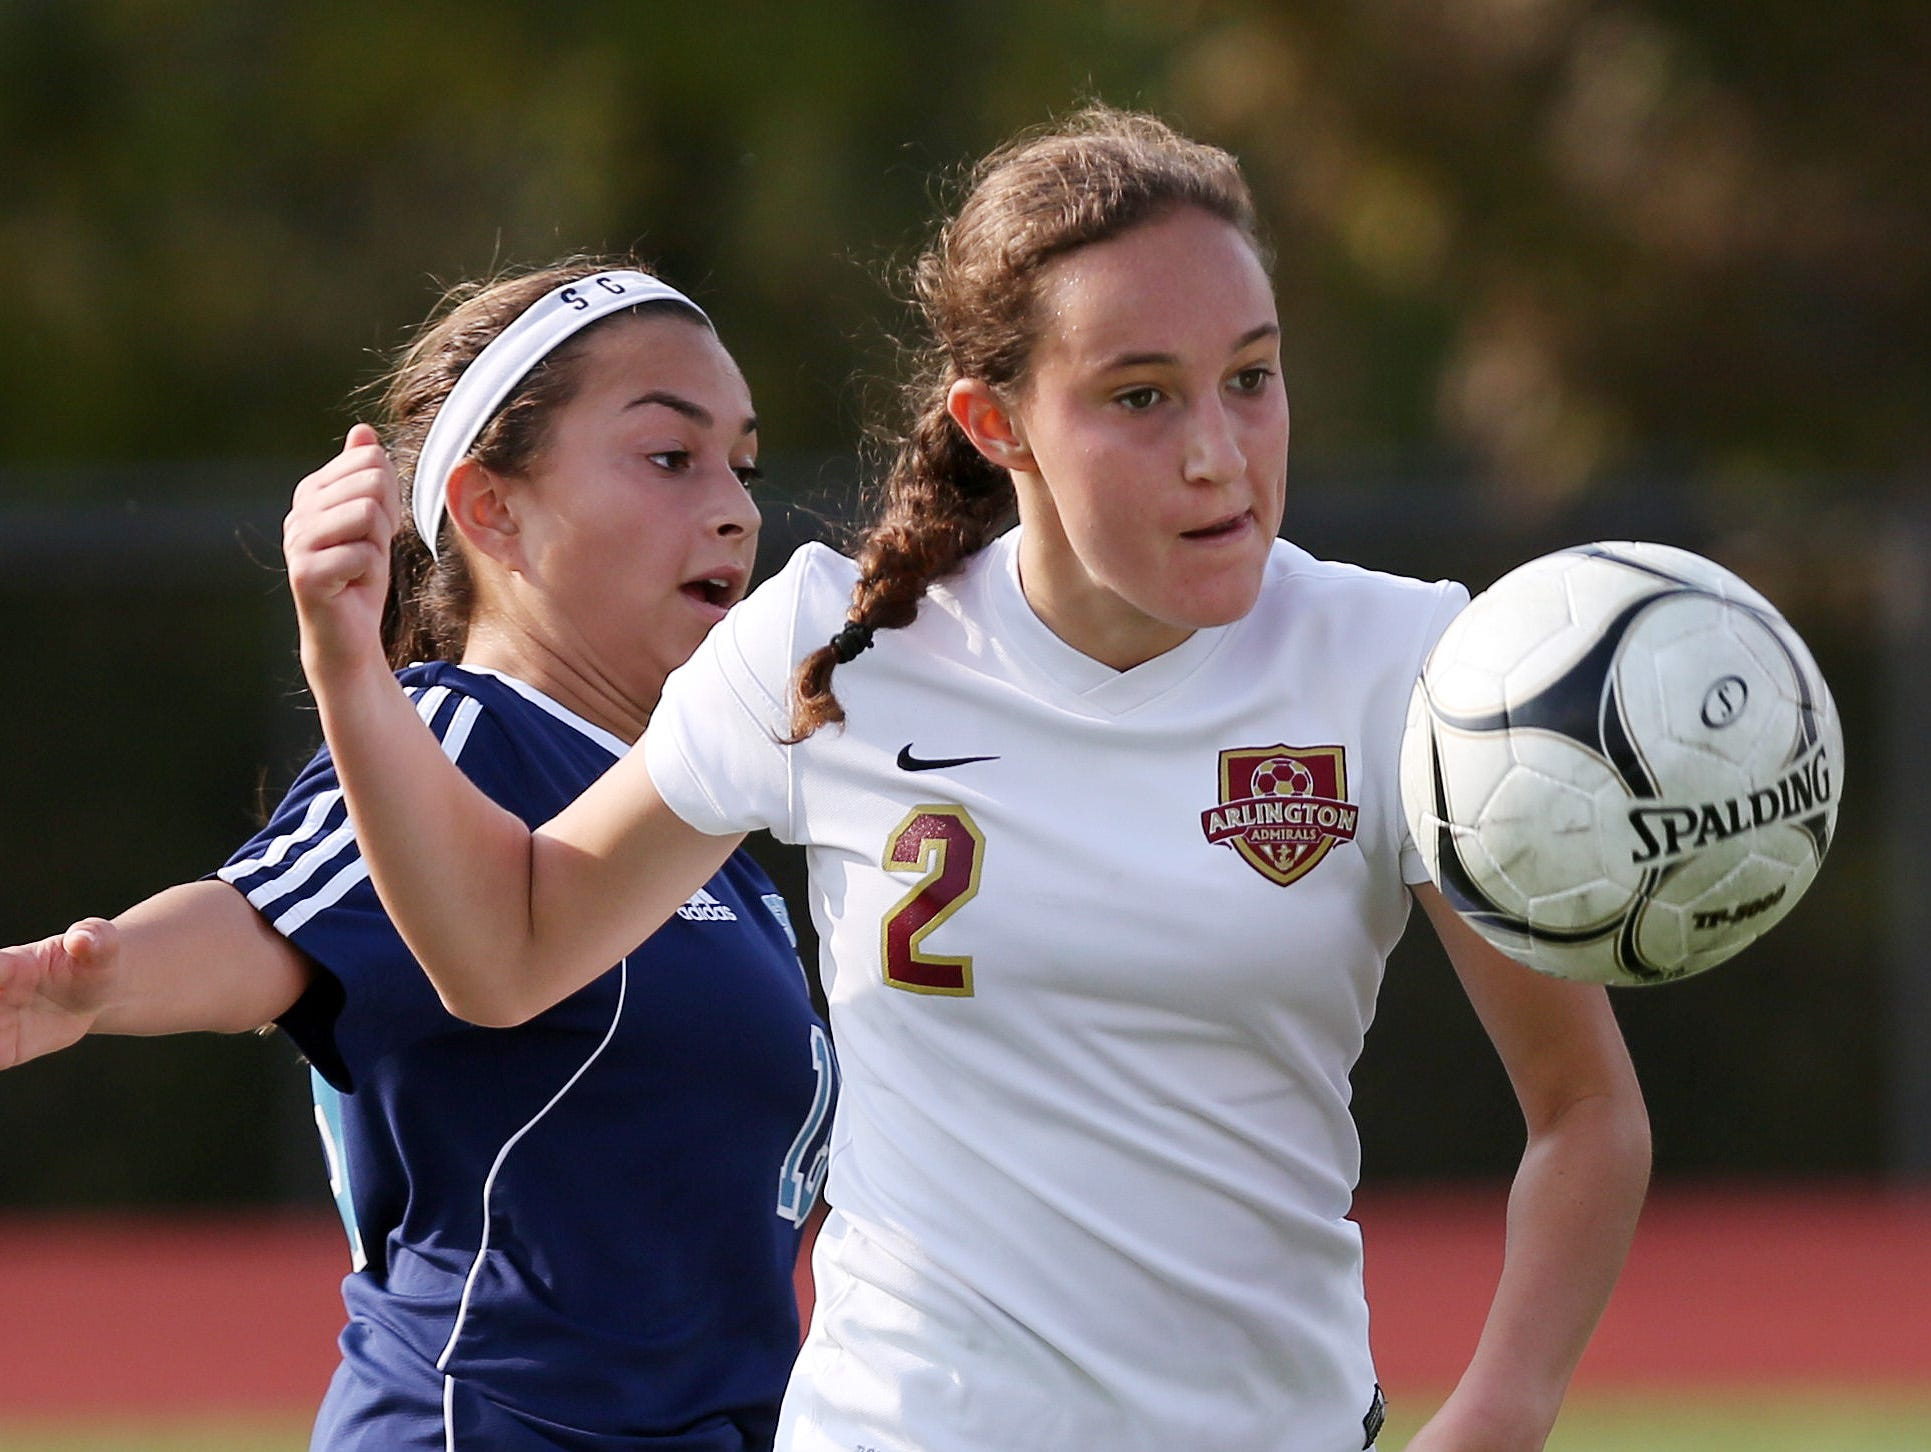 Arlington High School's Meggie Buttinger, right, takes control of the ball with a Suffern defender behind her during the Section 1 Class AA championship game at Yorktown High School on Sunday. Arlington won the game 2-0.